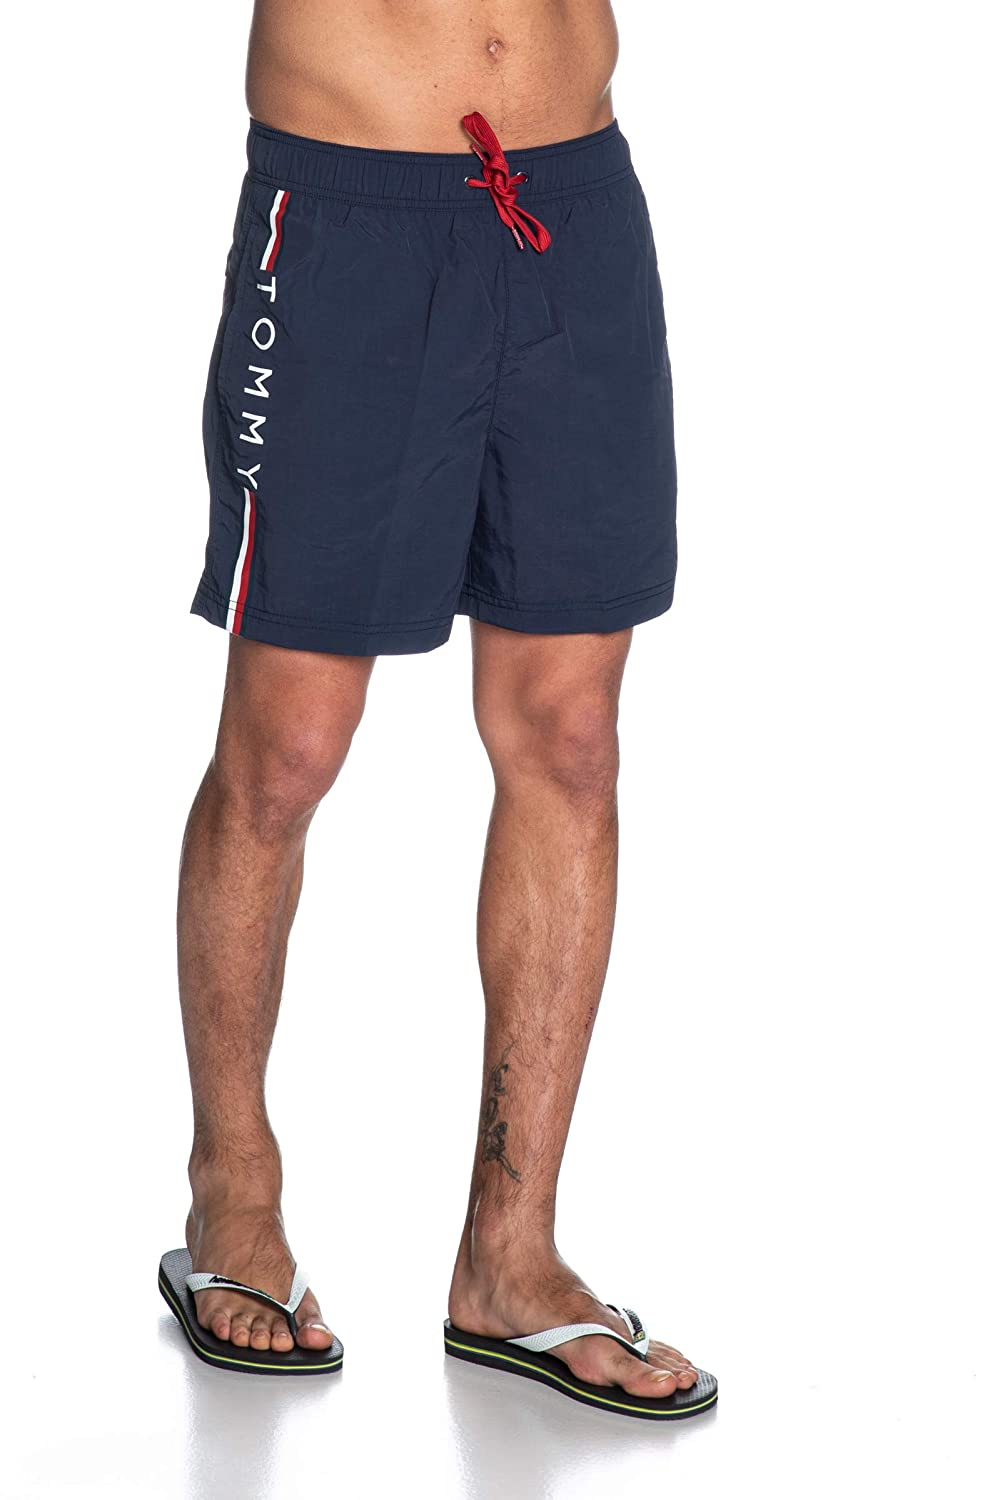 Blue Tommy Hilfiger Mens Medium Drawstring Swimshorts